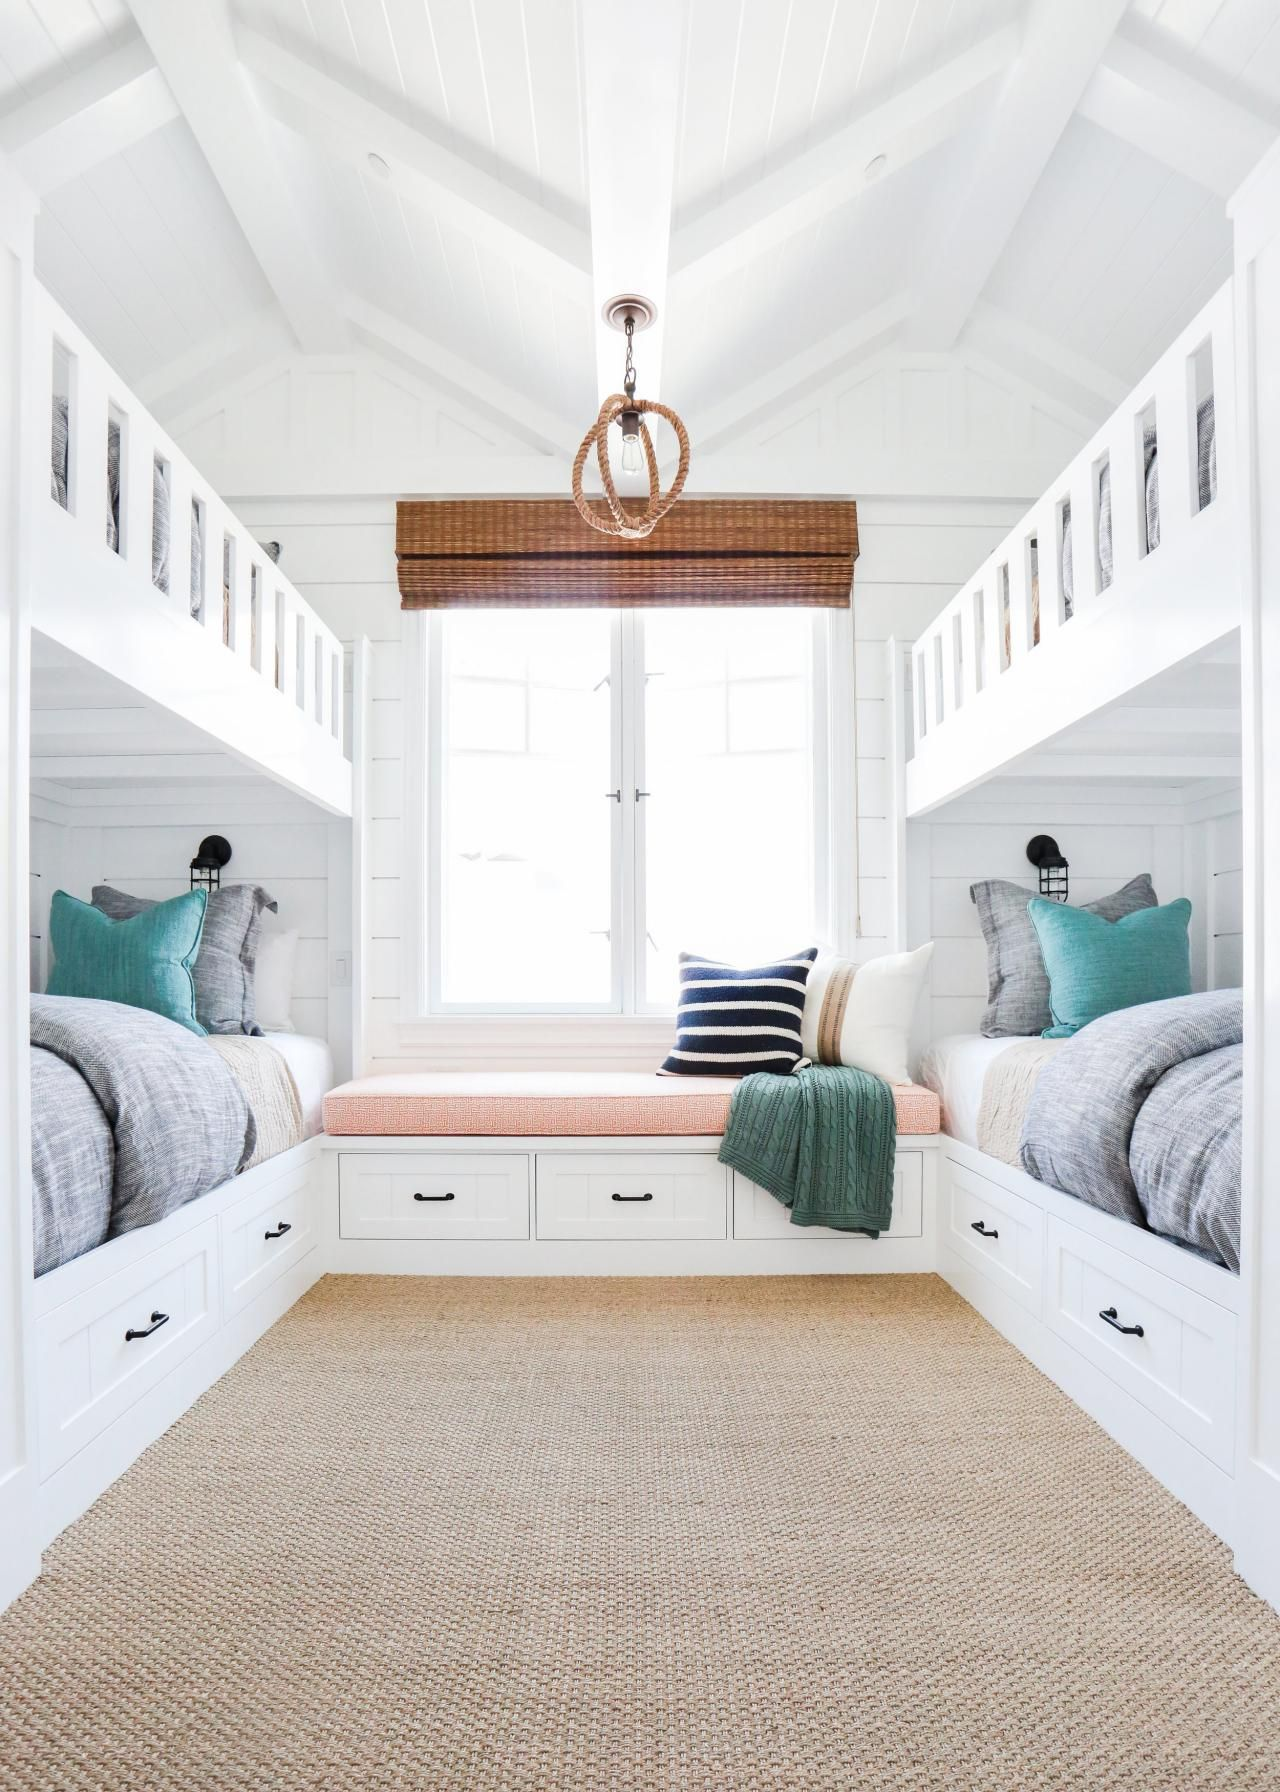 for the little to more made meat mattress cool rooms pin wood pinterest ash ideas a preferably whole cama though top needs small have thing google out of very room beds overall suspenso pesquisa and on structure better